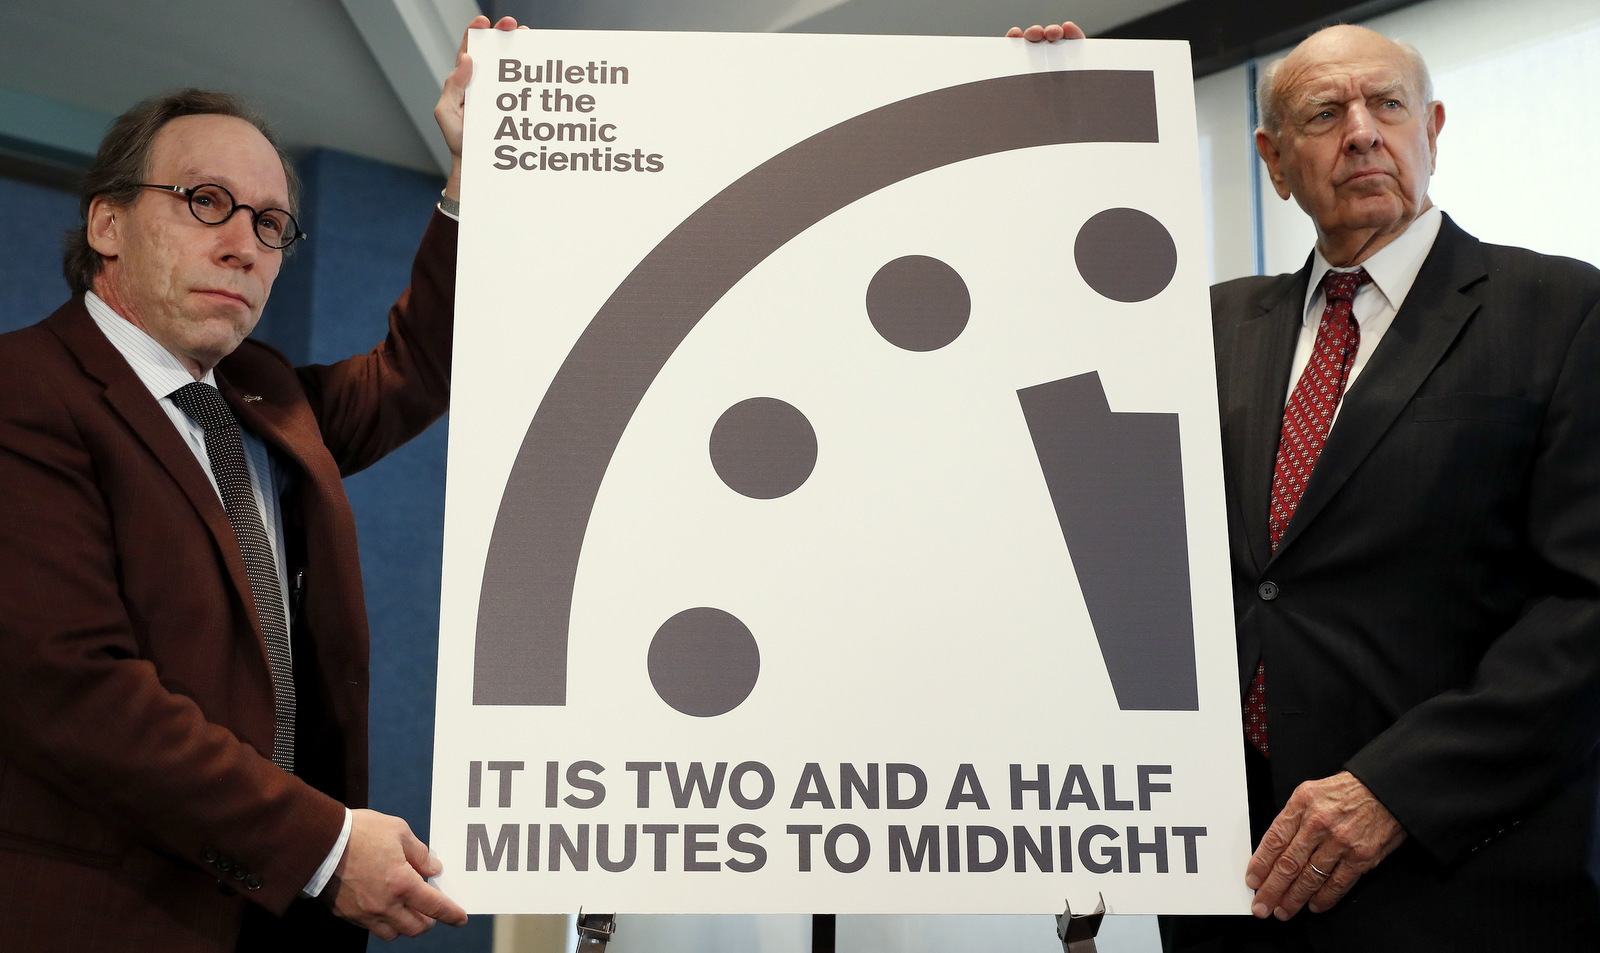 Lawrence Krauss, theoretical physicist, chair of the Bulletin of the Atomic ScientistsBoard of Sponsors, left, and Thomas Pickering, co-chair of the International Crisis Group, display the Doomsday Clock during a news conference the at the National Press Club in Washington, Thursday, Jan. 26, 2017, announcing that the Bulletin of the Atomic Scientist have moved the minute hand of the Doomsday Clock to two and a half minutes to midnight. (AP Photo/Carolyn Kaster)